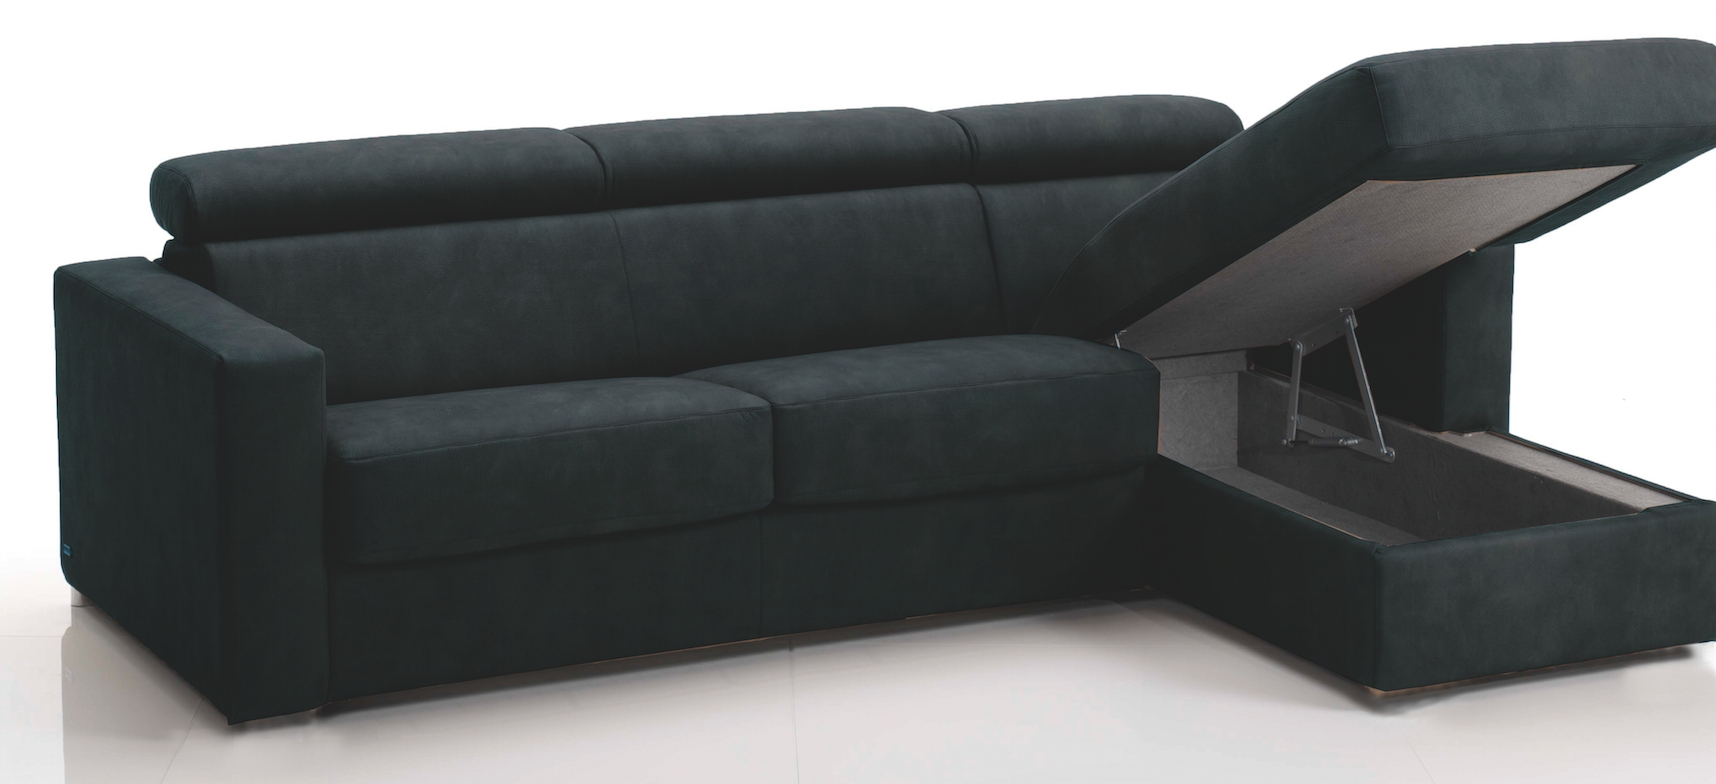 canap d 39 angle convertible avec t ti res rev tement microfibre noir lova mod le 3 places maxi. Black Bedroom Furniture Sets. Home Design Ideas